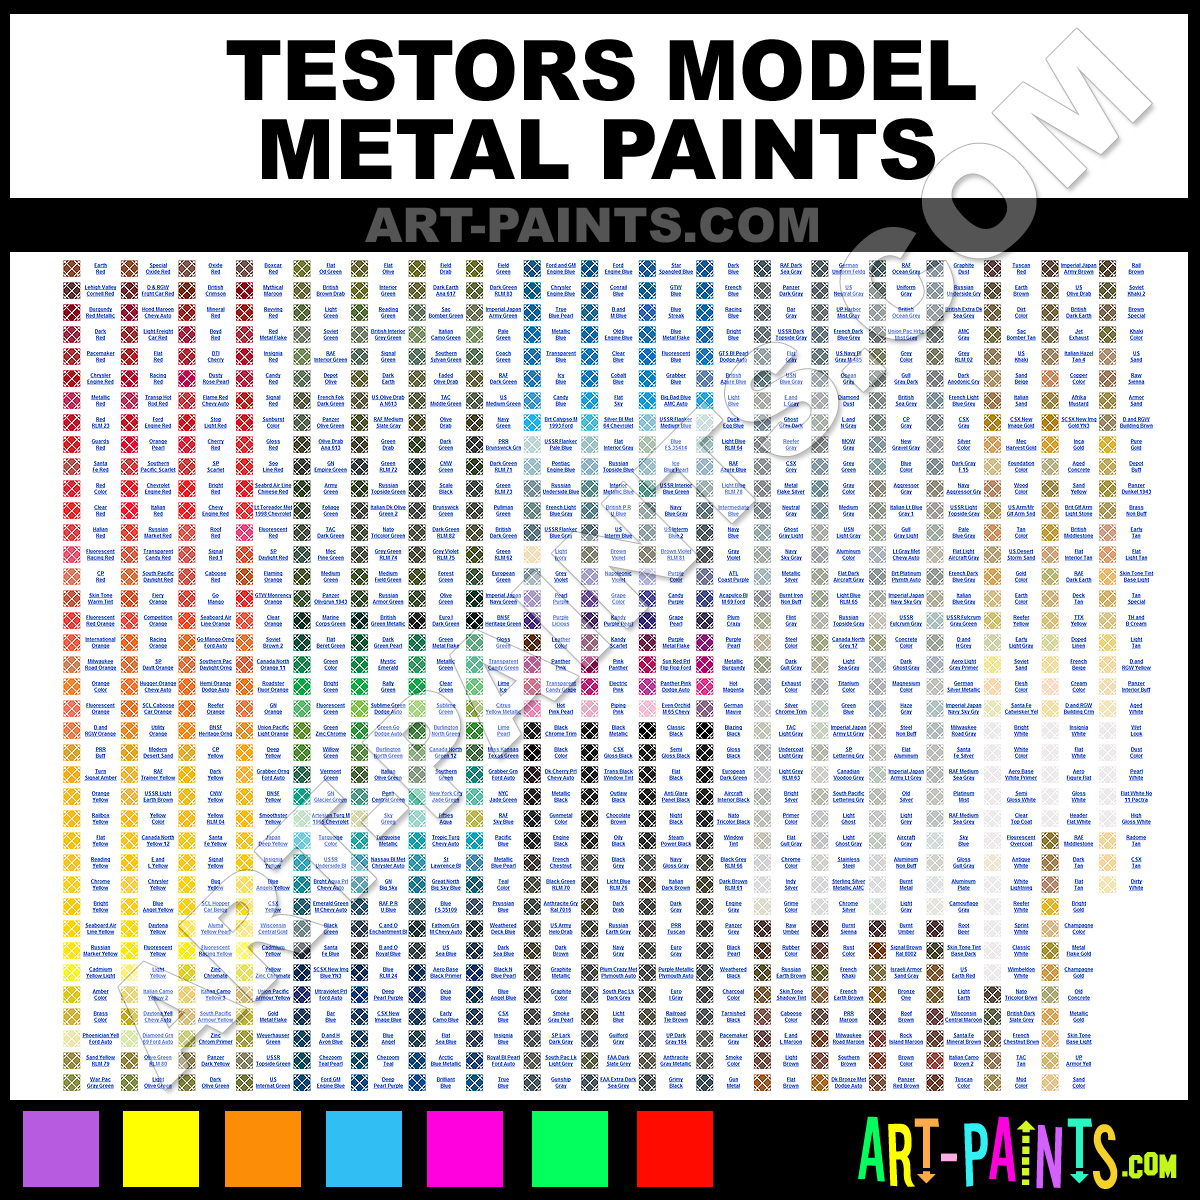 Testors paint colors chart gallery free any chart examples testors enamel paint color chart paint color ideas testors model master paint color chart champagne metal nvjuhfo Images